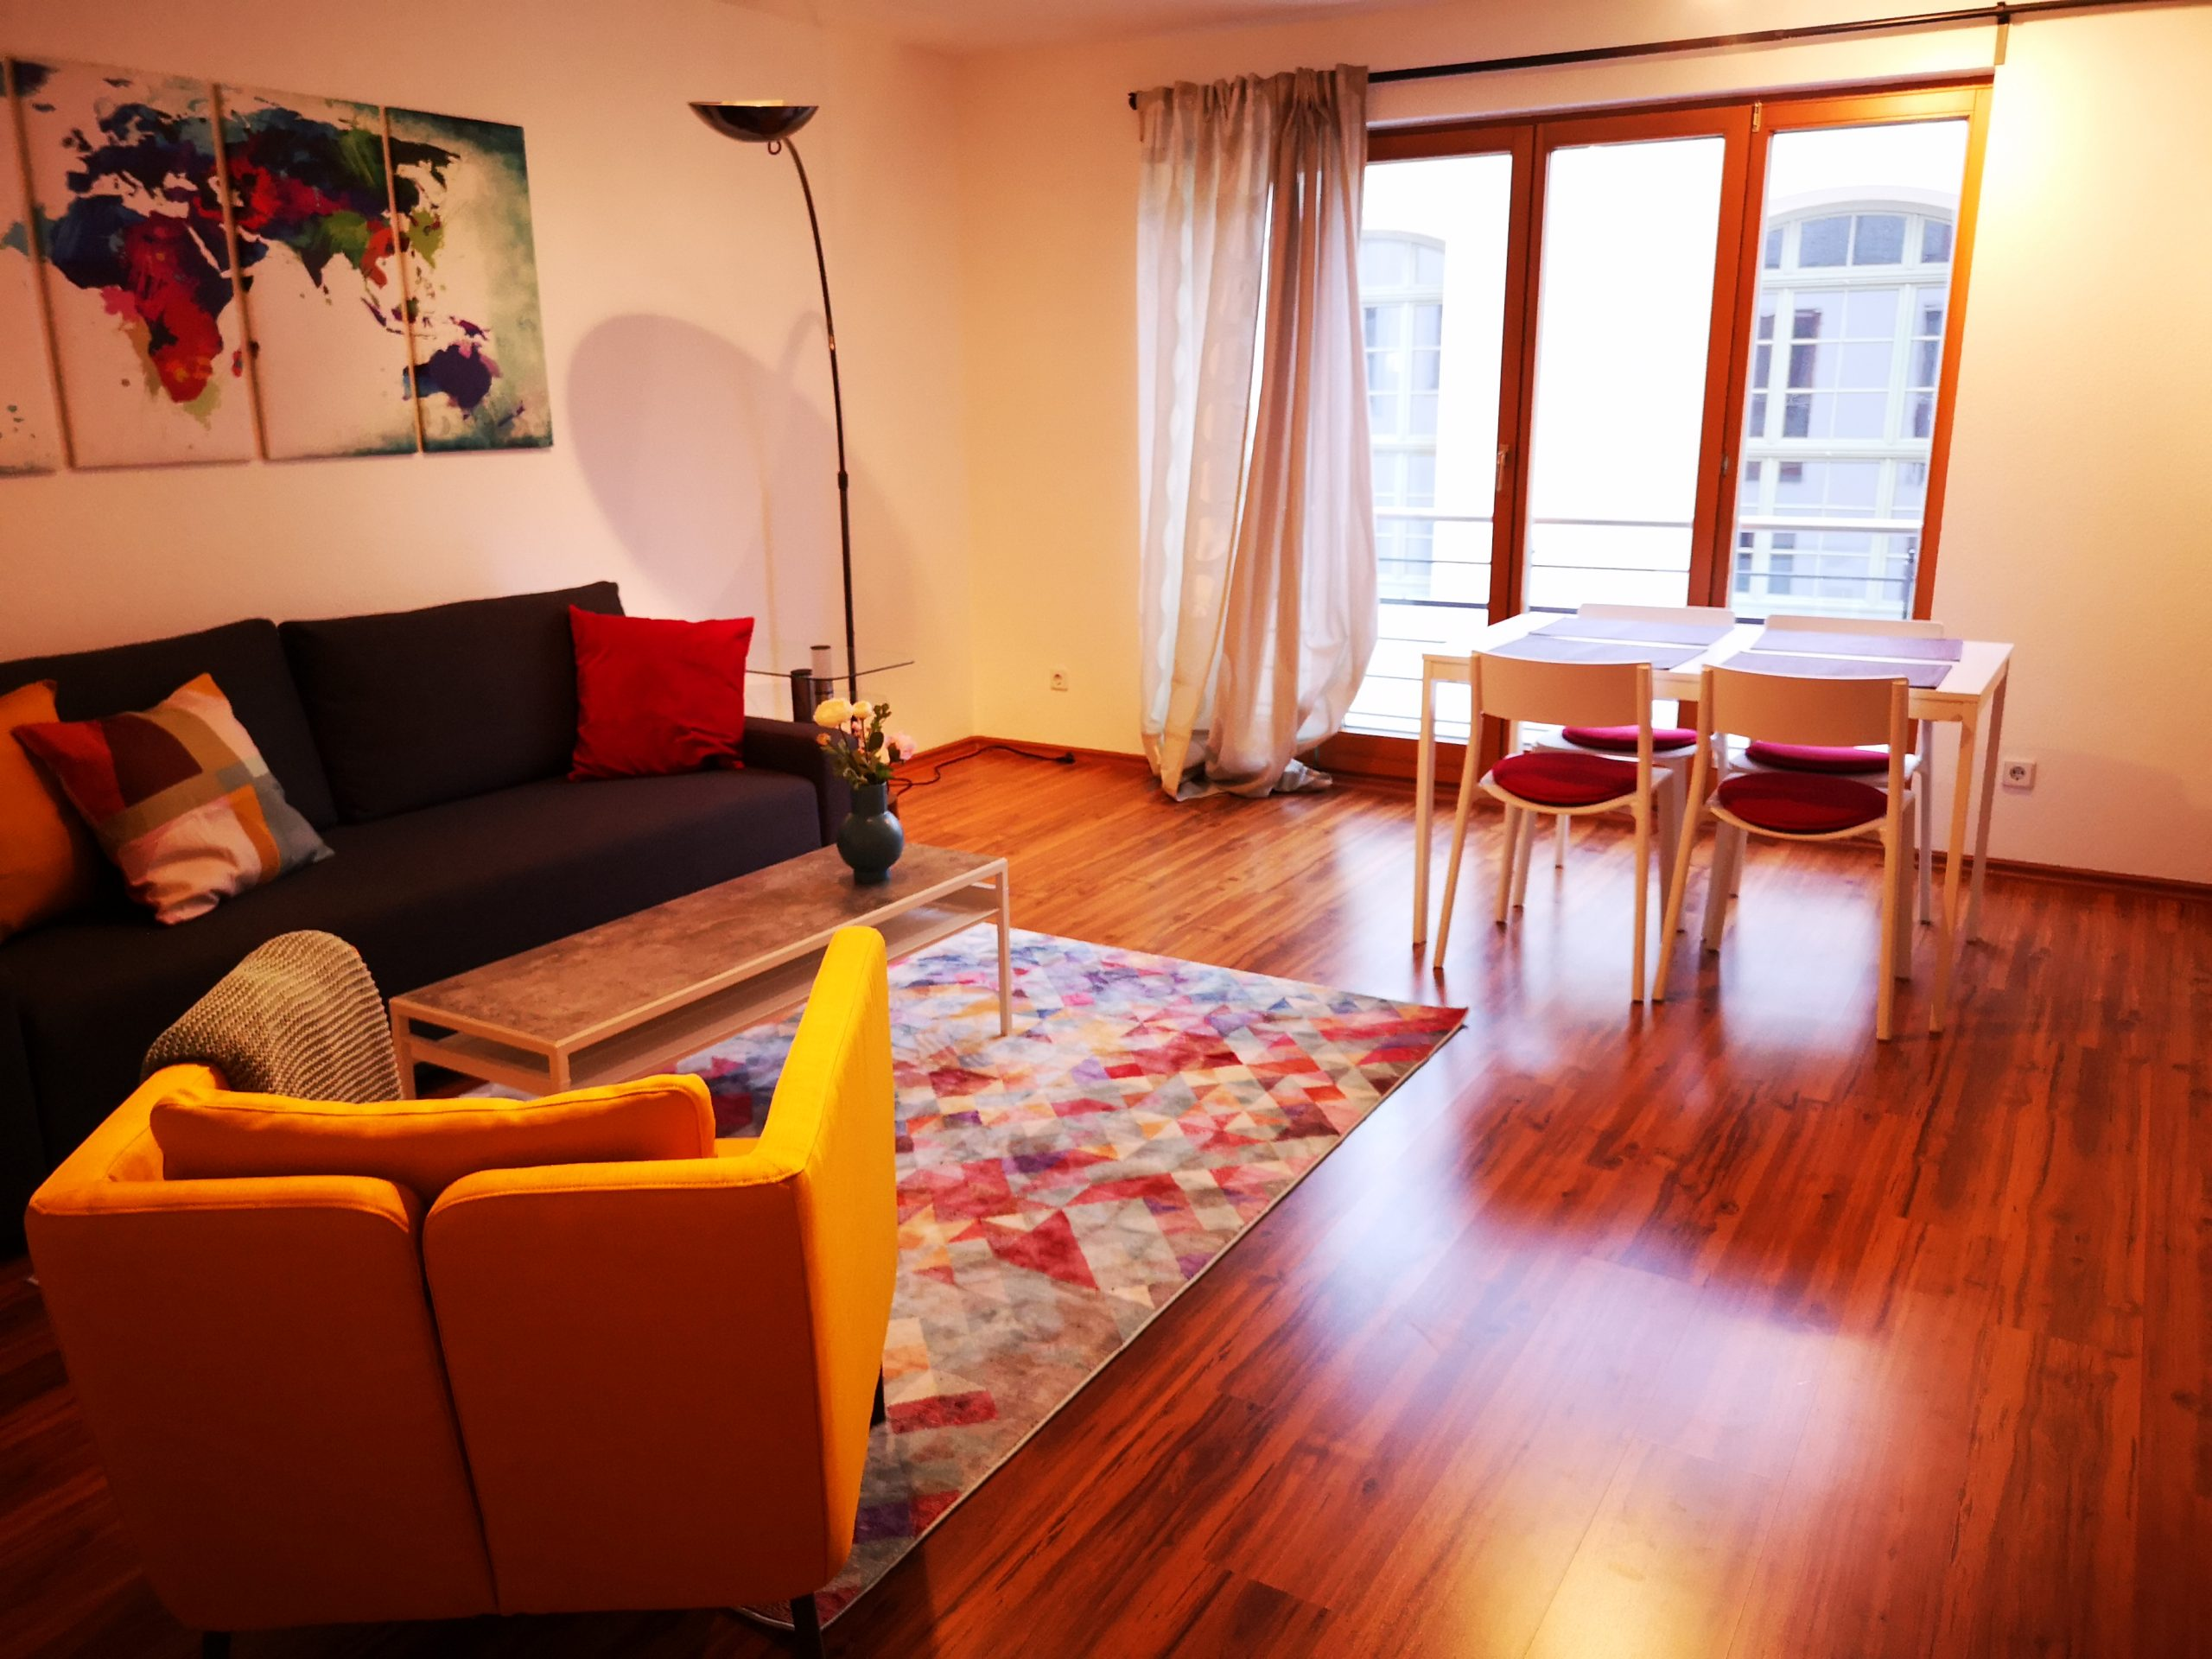 Spacious 1-bedroom apartment in the middle of Dresden's baroque quarter